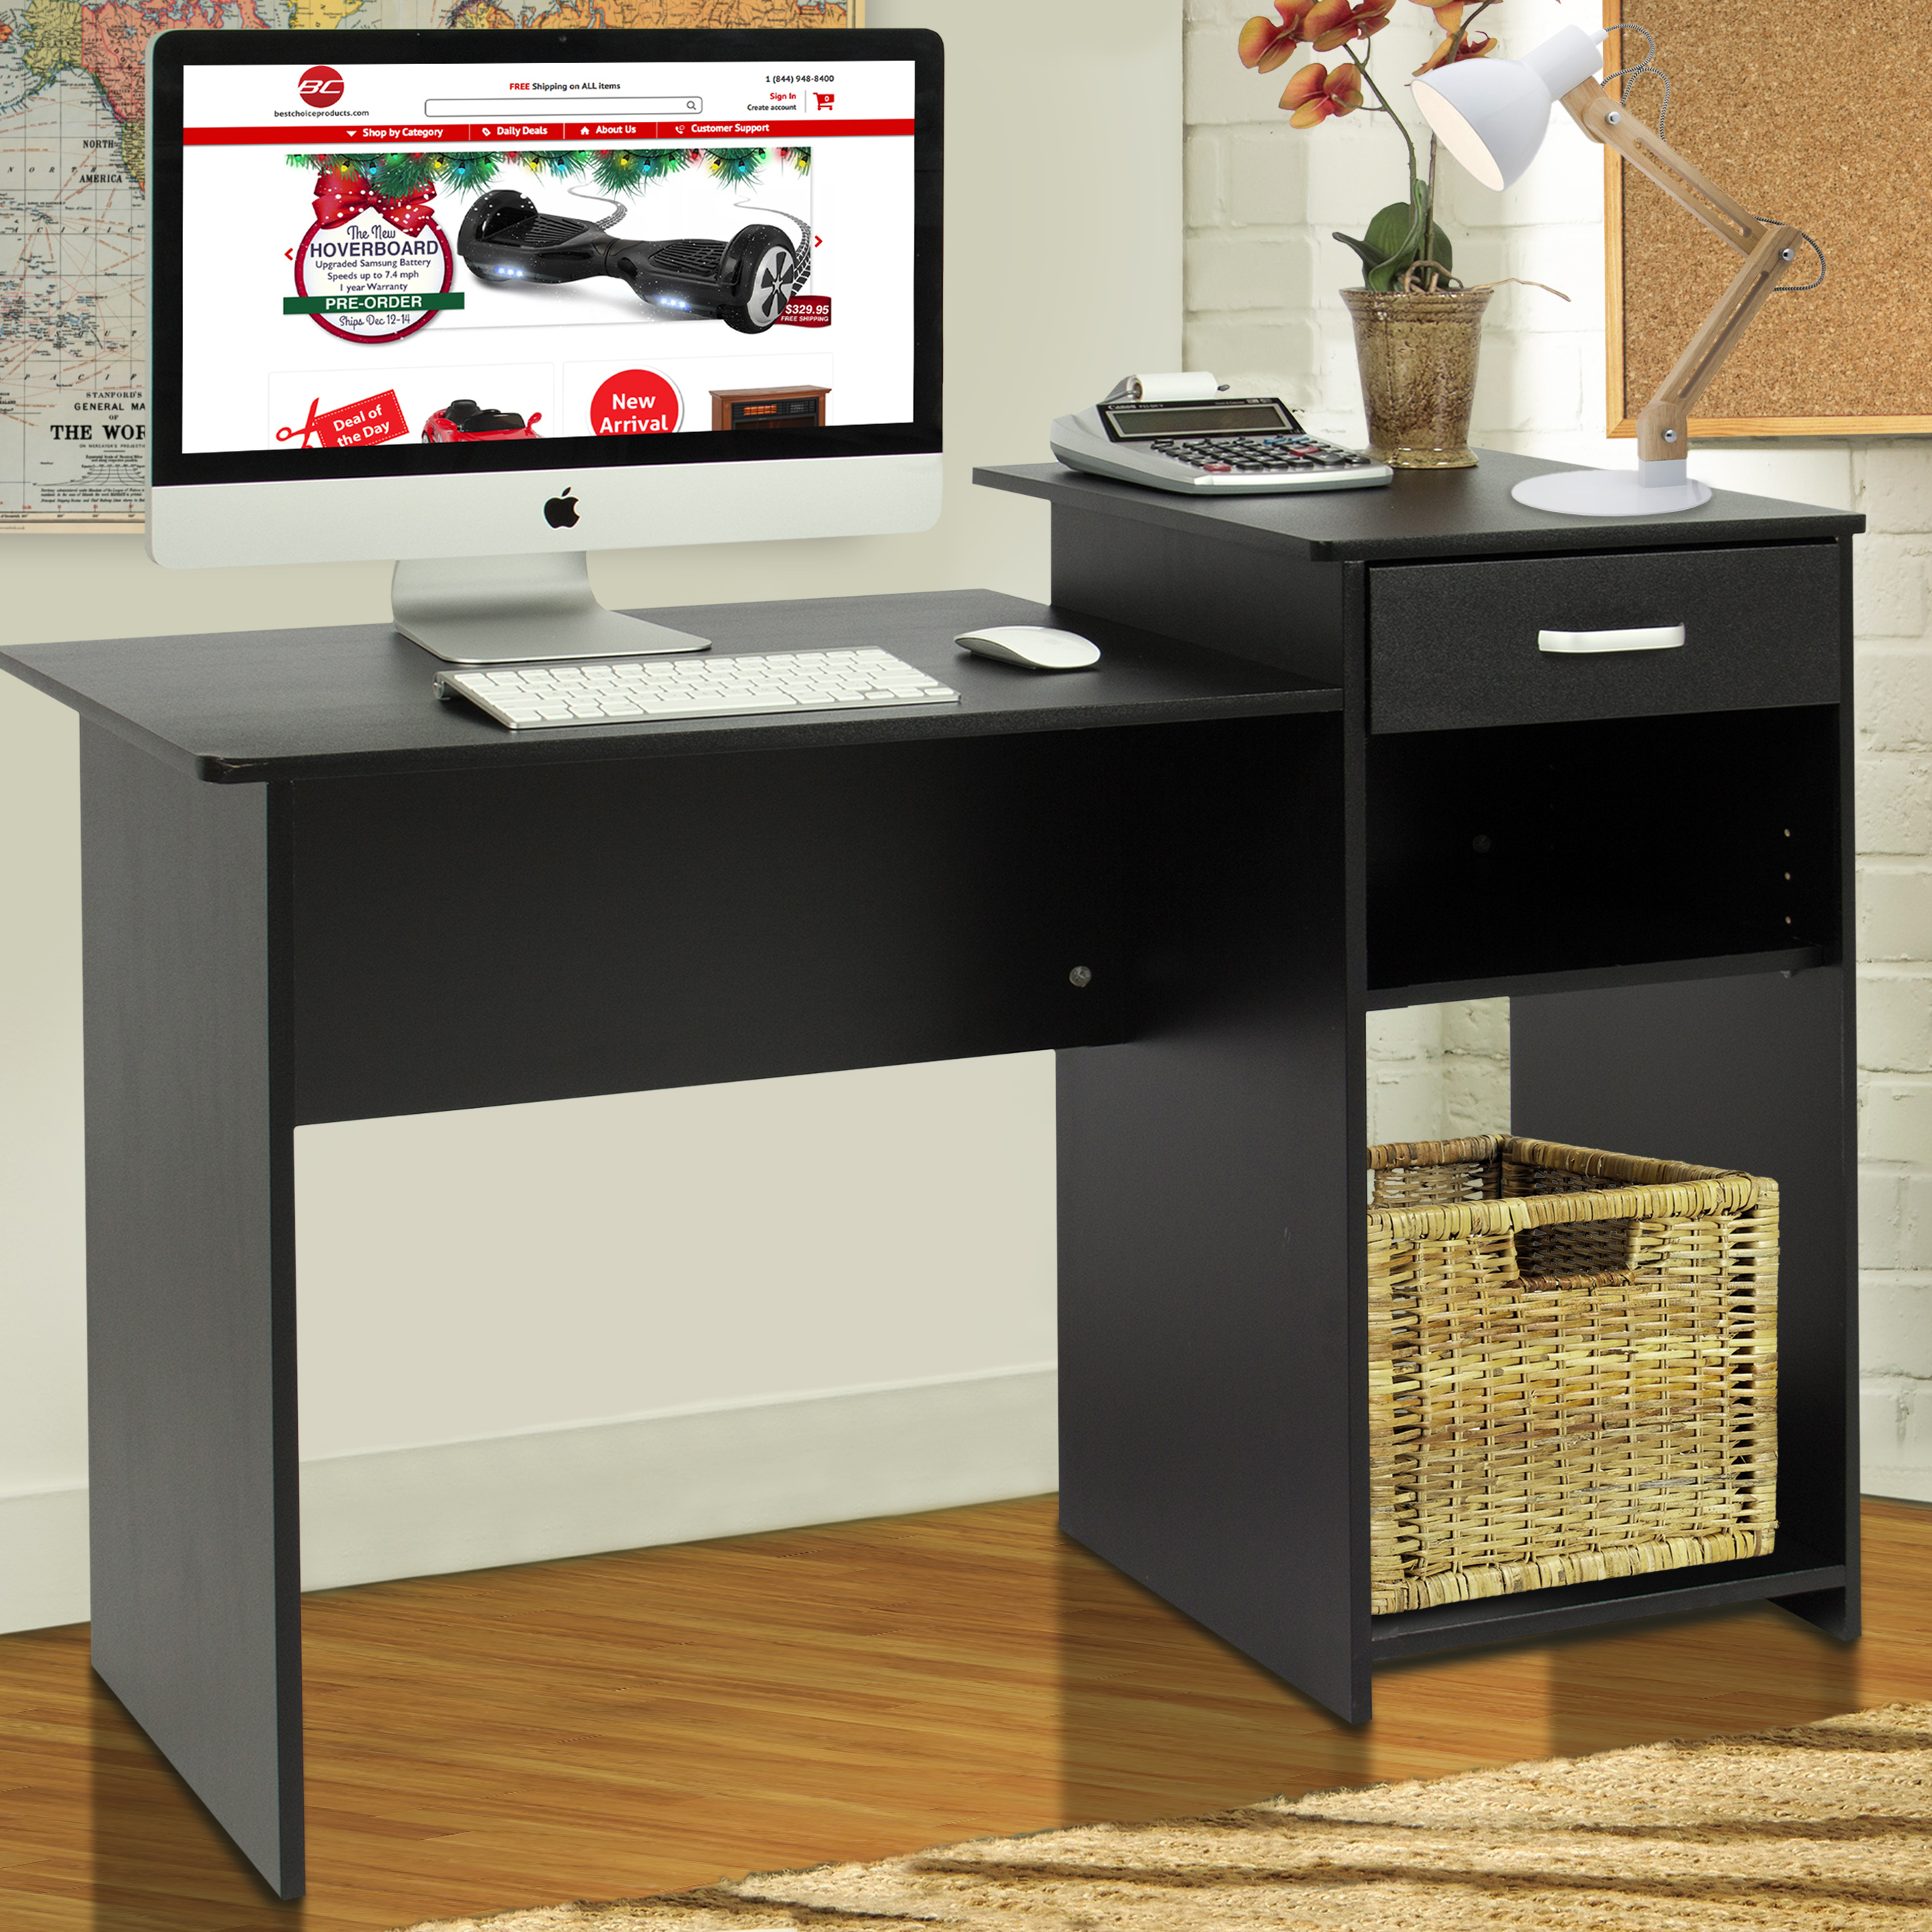 Best Choice Products Student Computer Desk Home Office Wood Laptop Table  Study Workstation Dorm   Black   Walmart.com